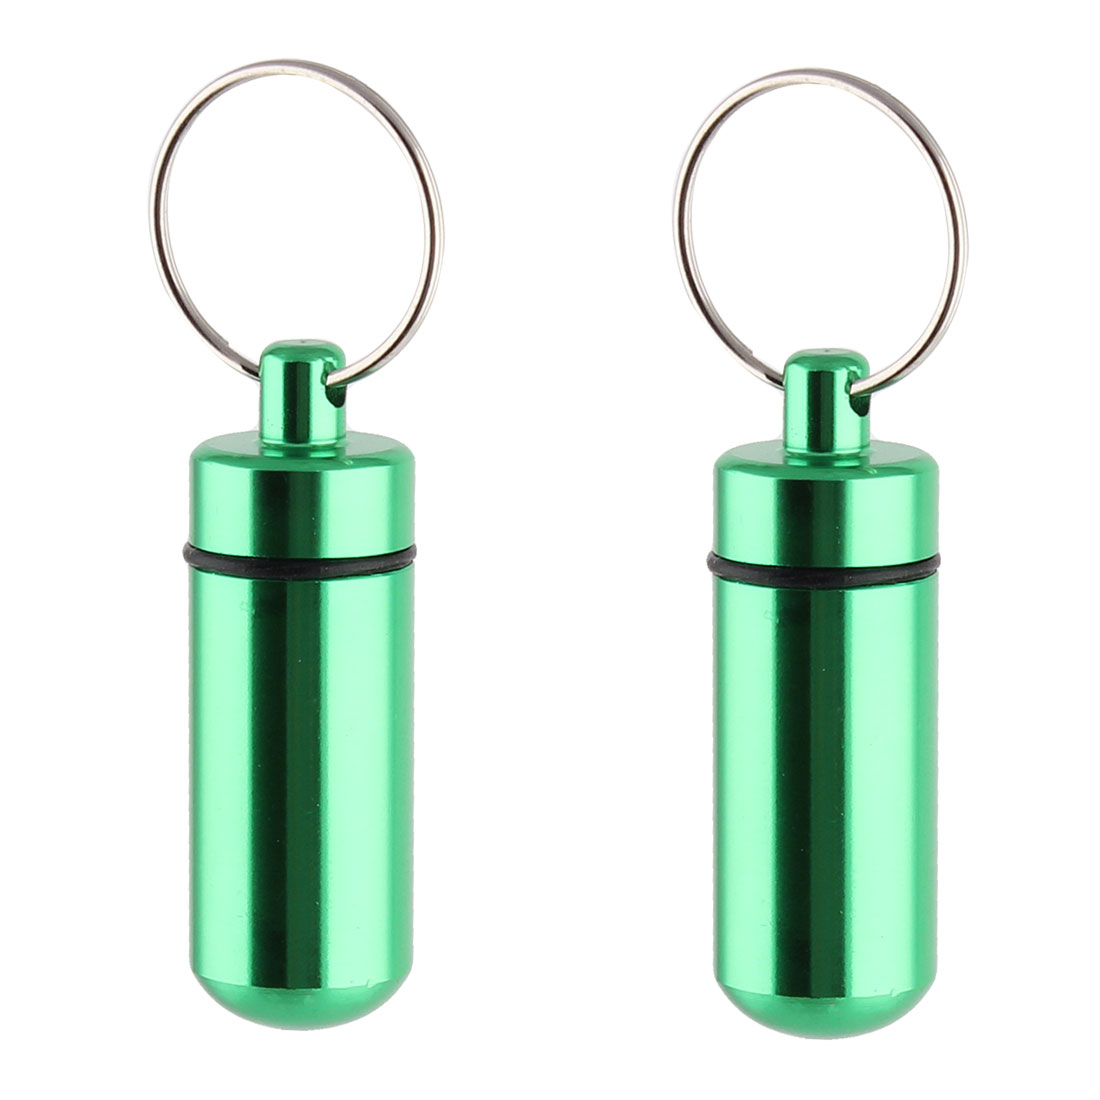 Aluminum Alloy Portable Pill Tablet Case Box Holder Keyring Keychain Green 2pcs